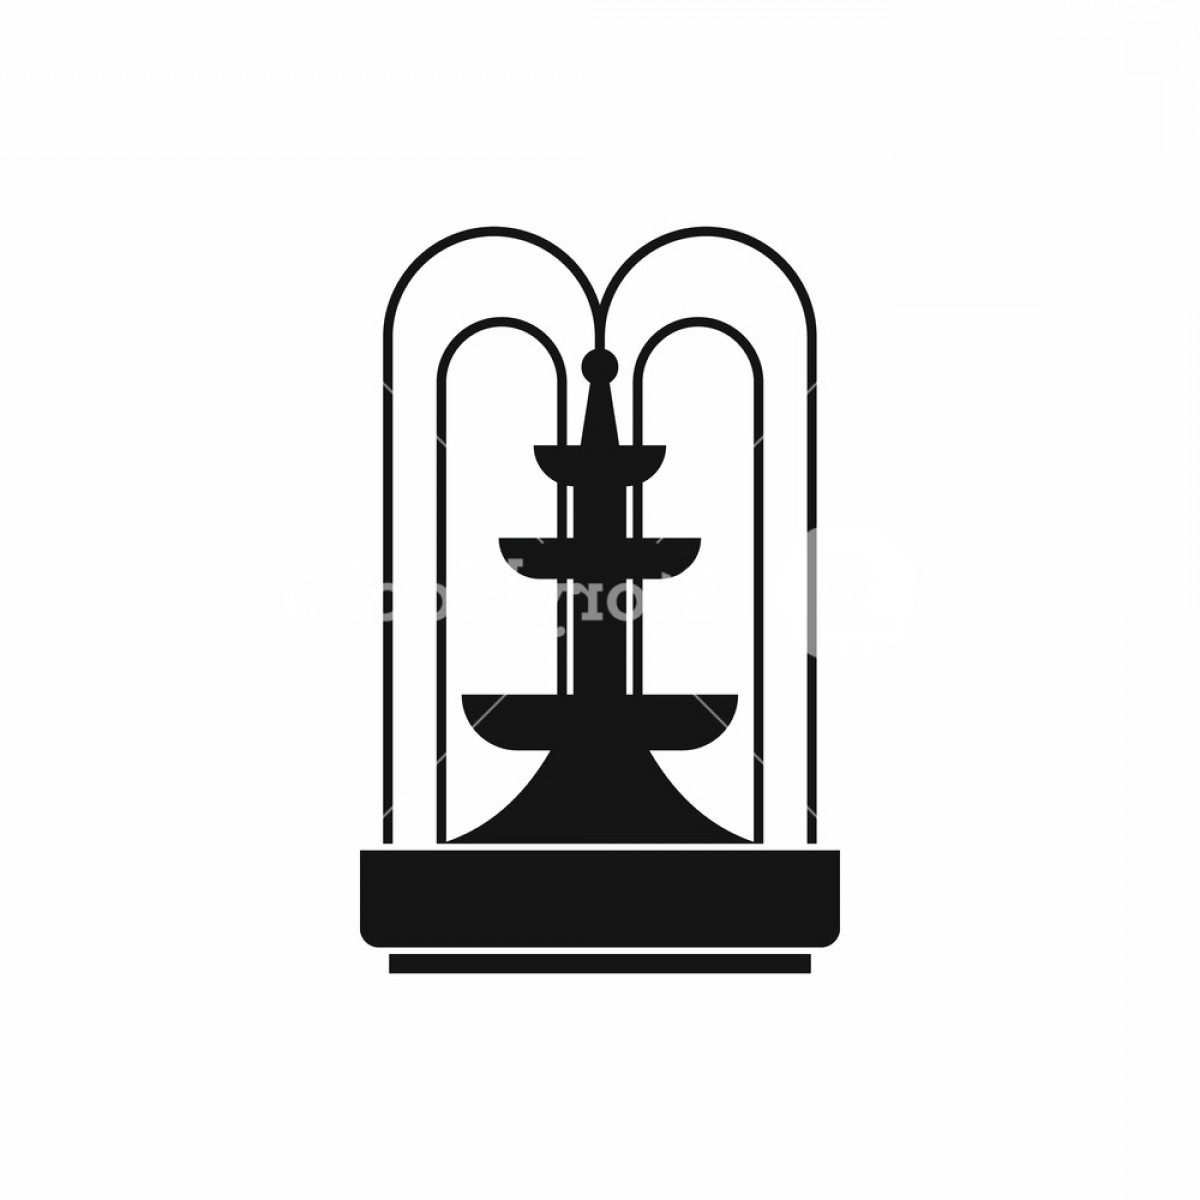 RZR Vector Black And White: Fountain Icon In Simple Style Water Source Symbol Isolated Vector Illustration Bzzxnjwofjfqxgcf